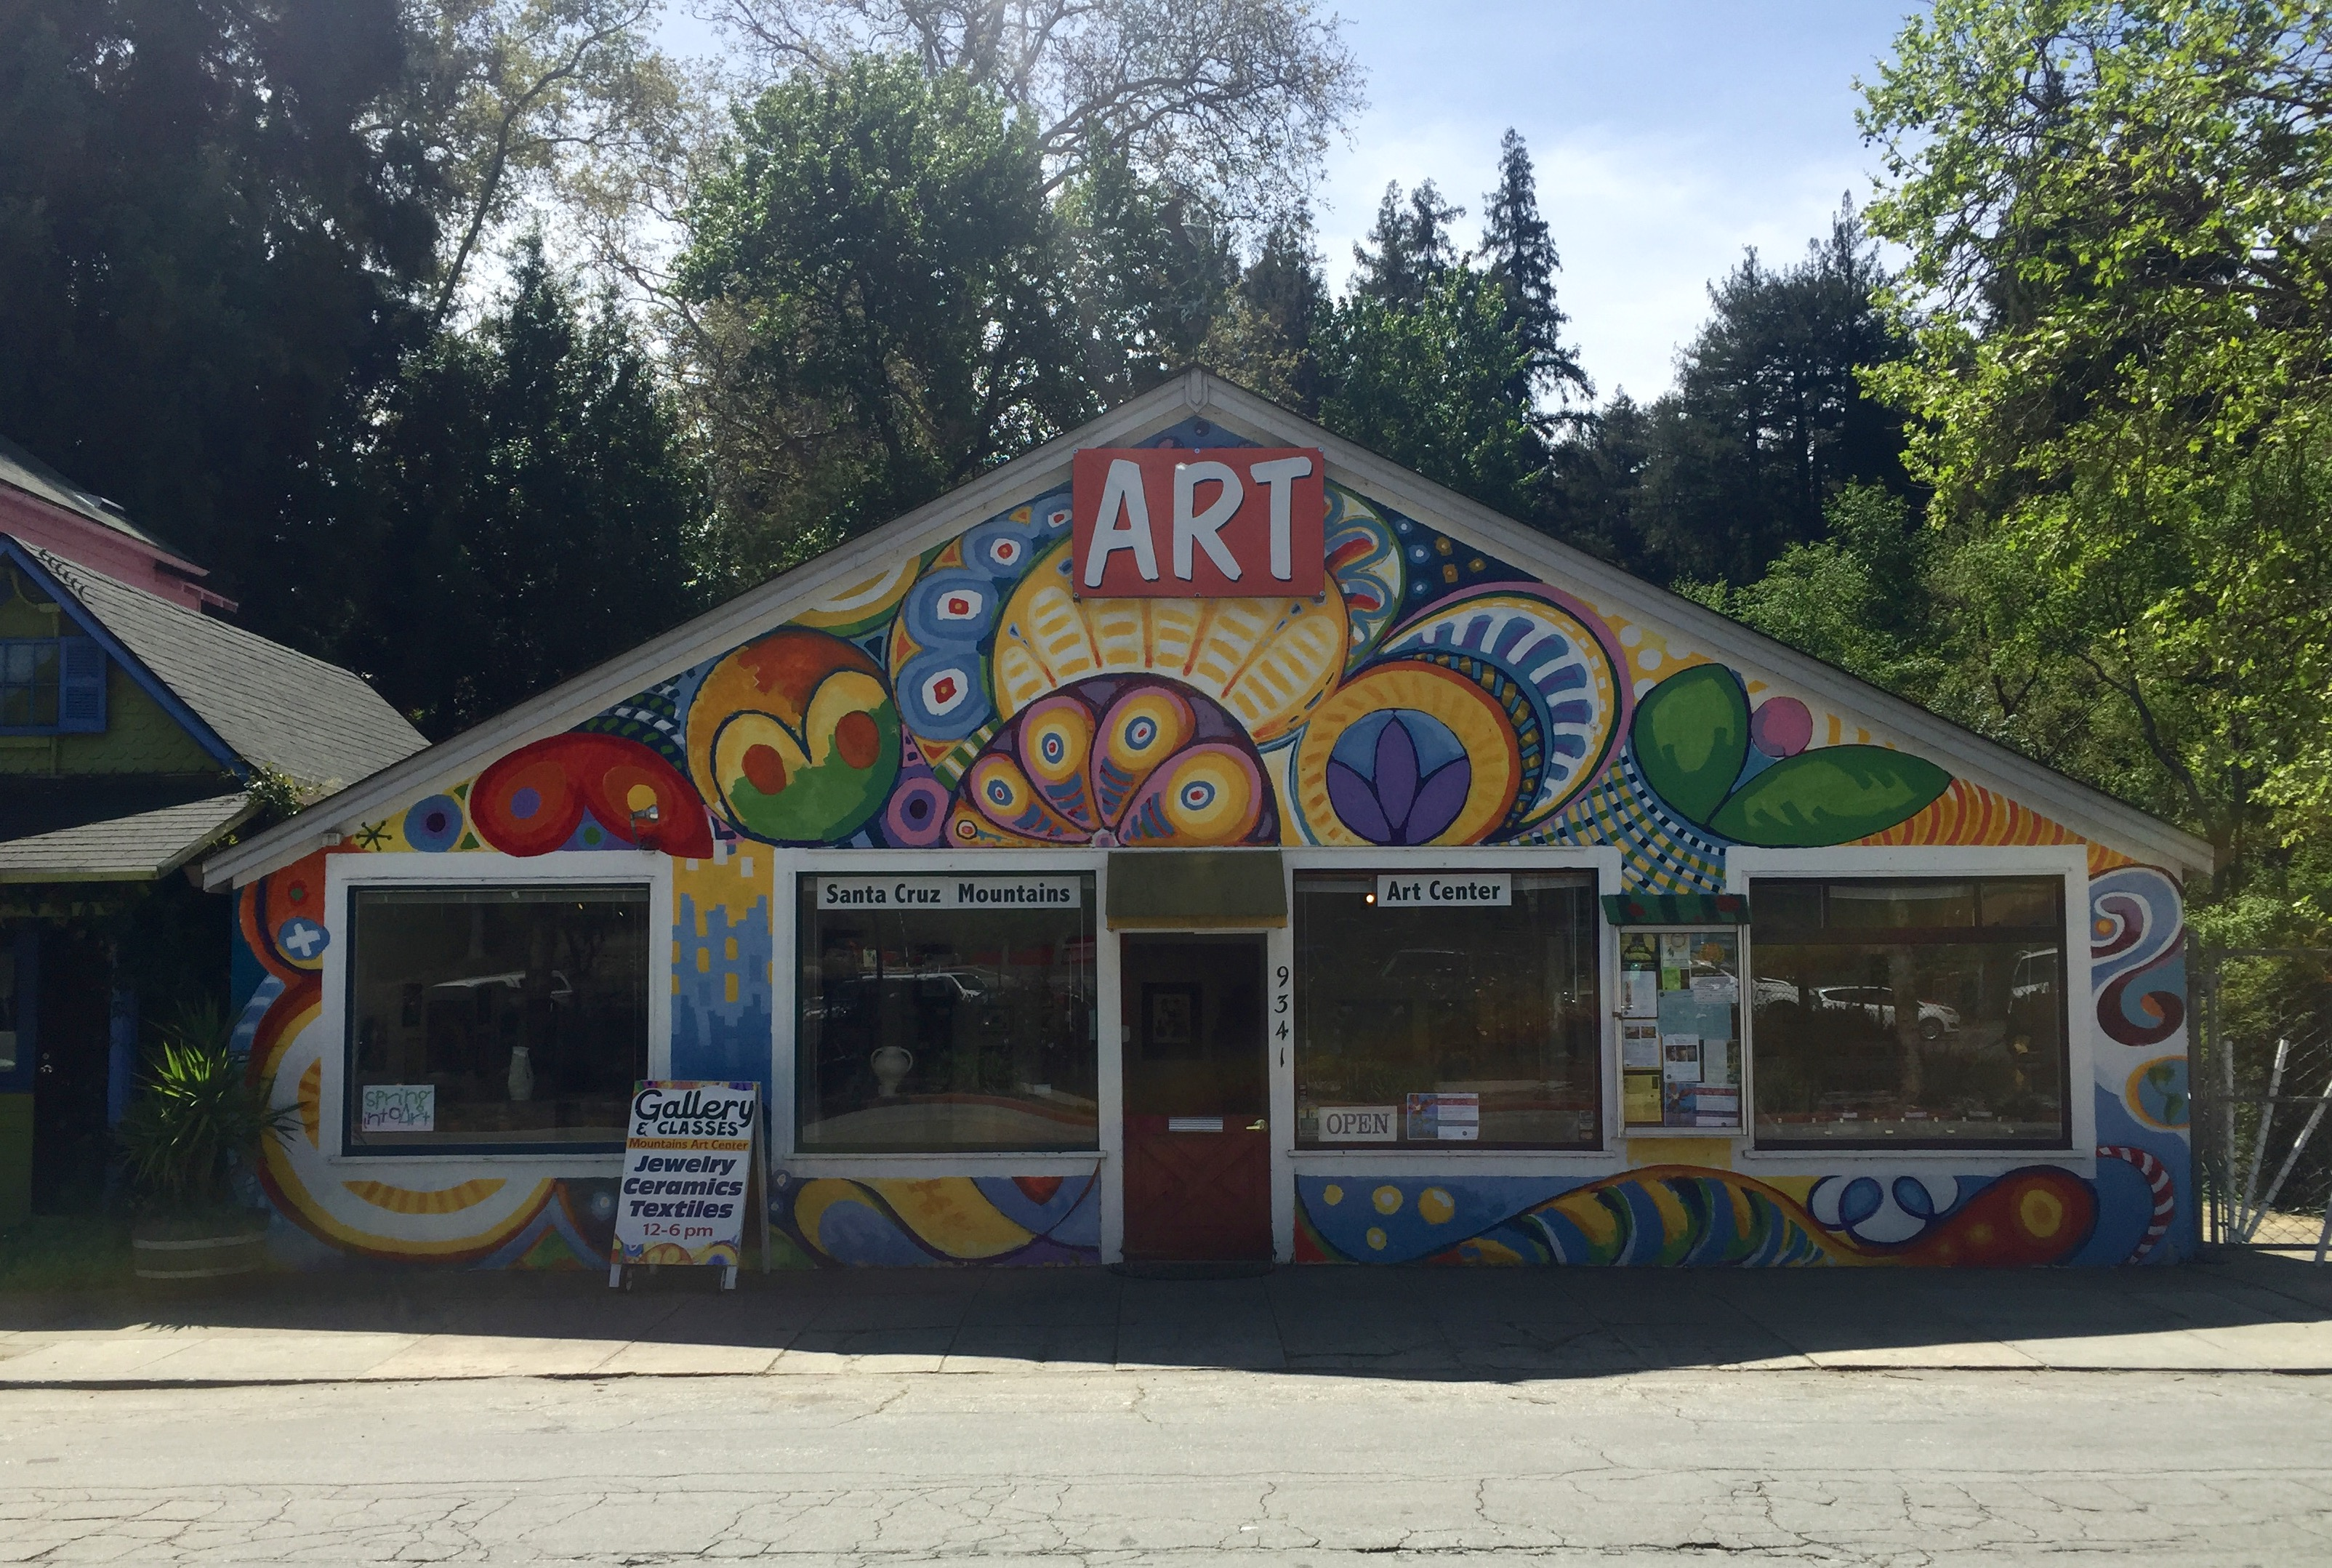 Thomas Gallery at the Santa Cruz Mountains Art Center